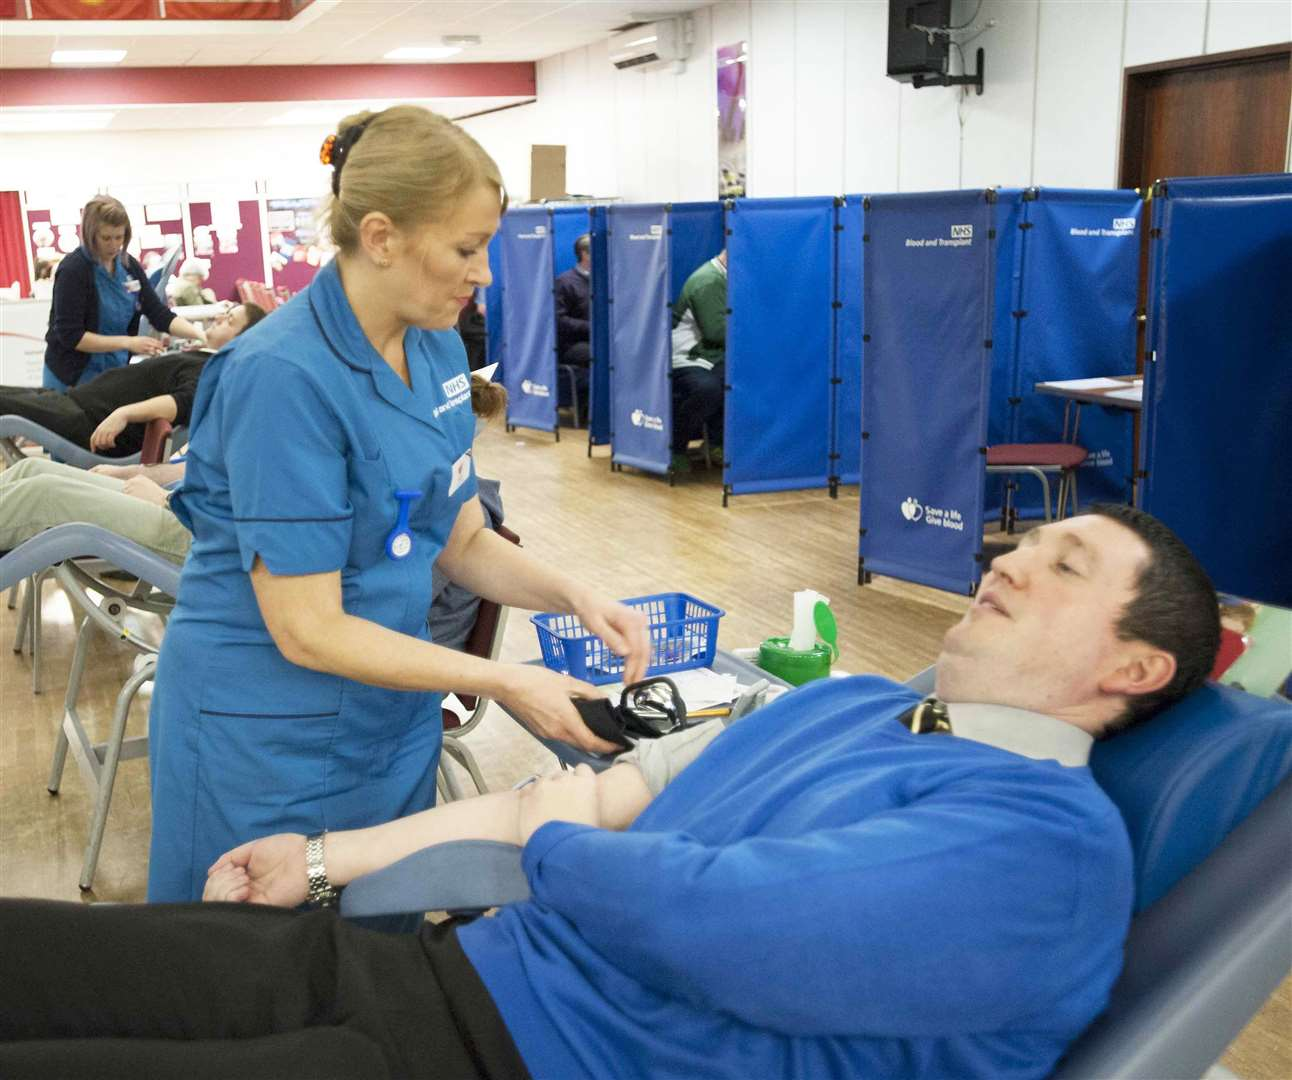 Lynn News News Editor Alister Webb preparing to become a New Blood Donor at The Blood Donor session King's Centre King's Lynn Pictured Allister with Nurse Suzie Currie completing his blood donation session.. (7421594)